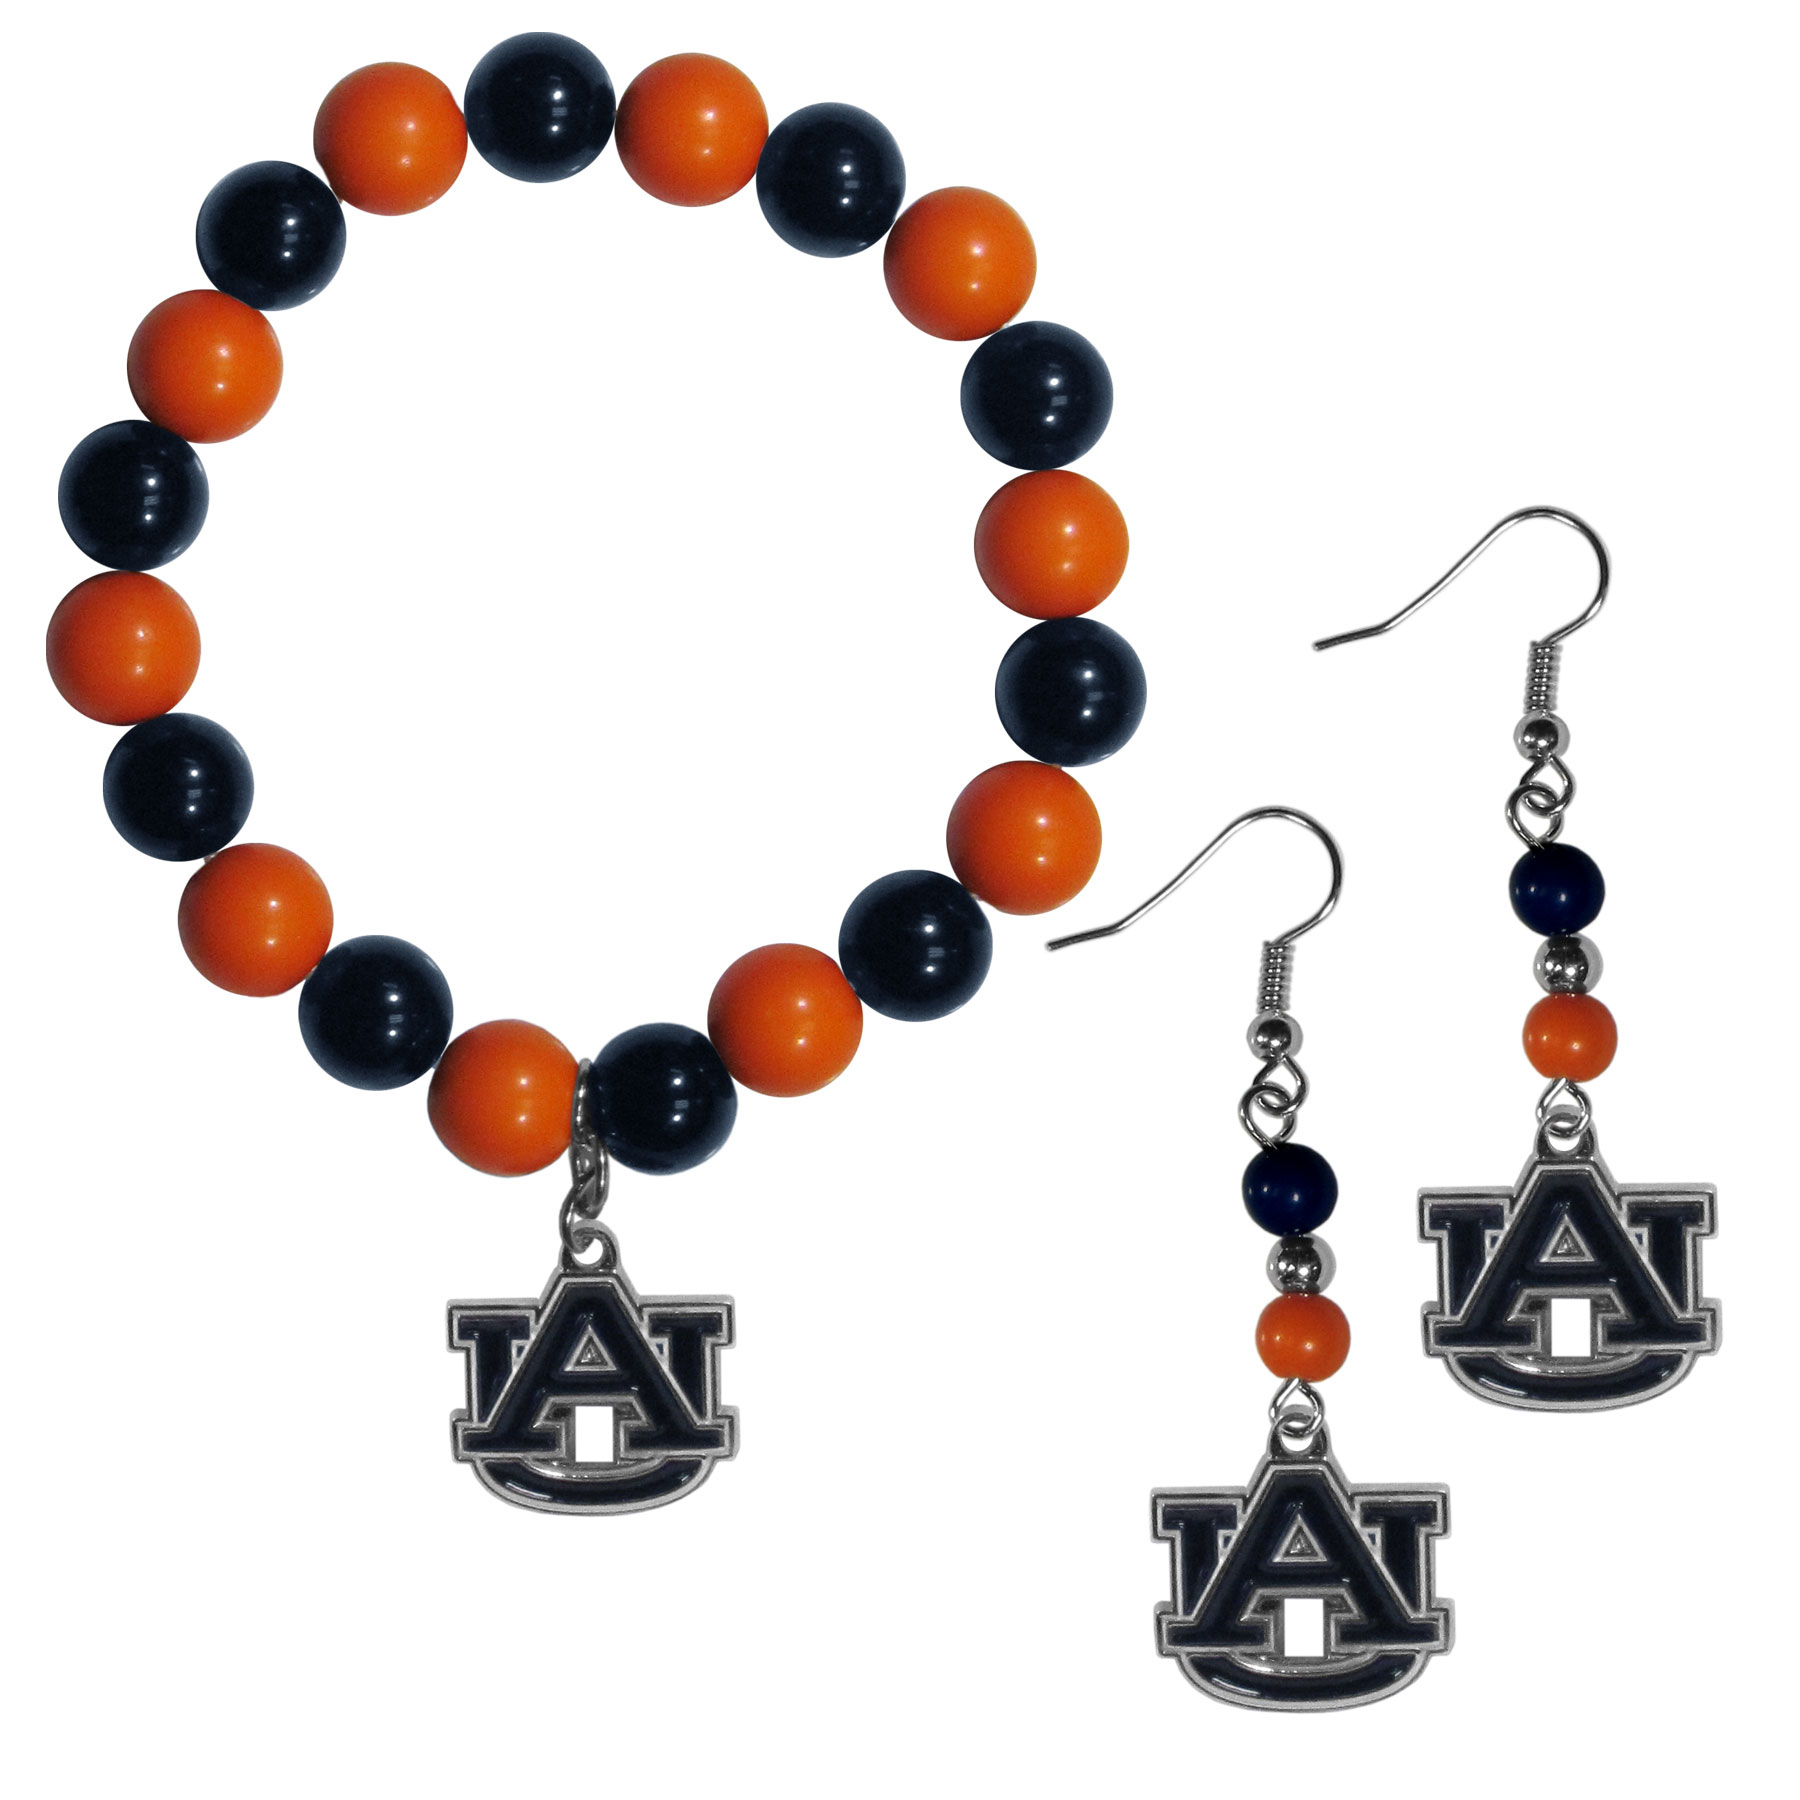 Auburn Tigers Fan Bead Earrings and Bracelet Set - This fun and colorful Auburn Tigers fan bead jewelry set is fun and casual with eye-catching beads in bright team colors. The fashionable dangle earrings feature a team colored beads that drop down to a carved and enameled charm. The stretch bracelet has larger matching beads that make a striking statement and have a matching team charm. These sassy yet sporty jewelry pieces make a perfect gift for any female fan. Spice up your game-day outfit with these fun colorful earrings and bracelet that are also cute enough for any day.